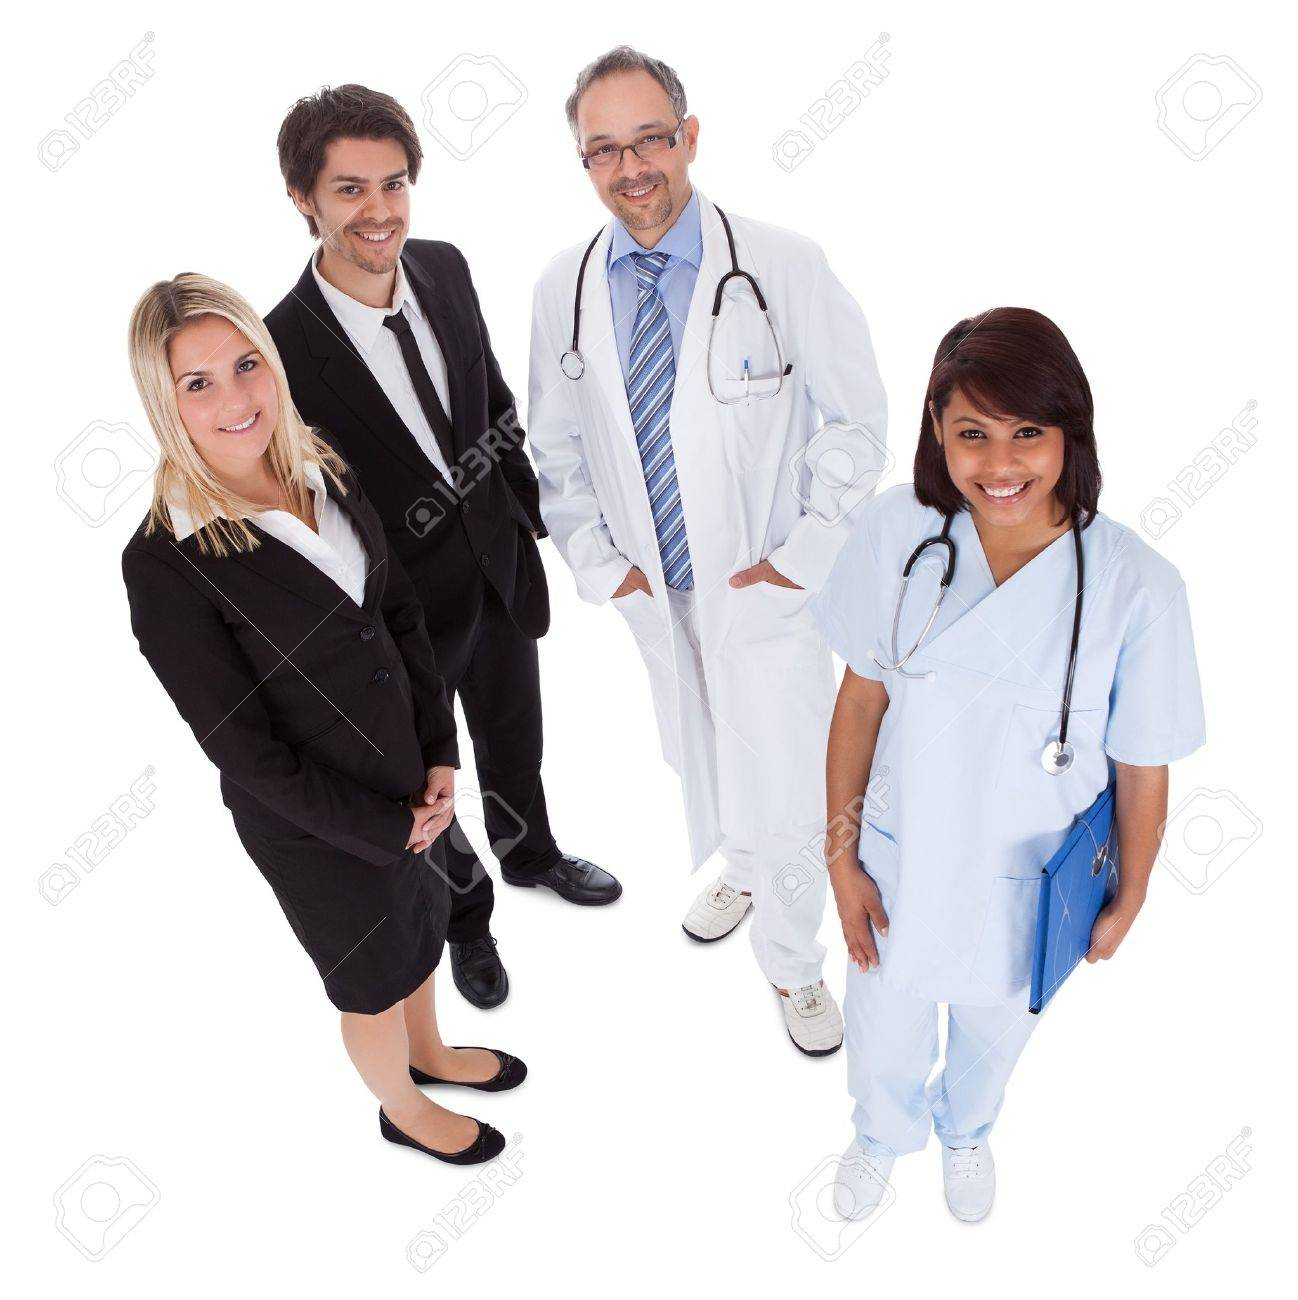 Portrait of businesspeople and medical workers standing on white background Stock Photo - 13888334